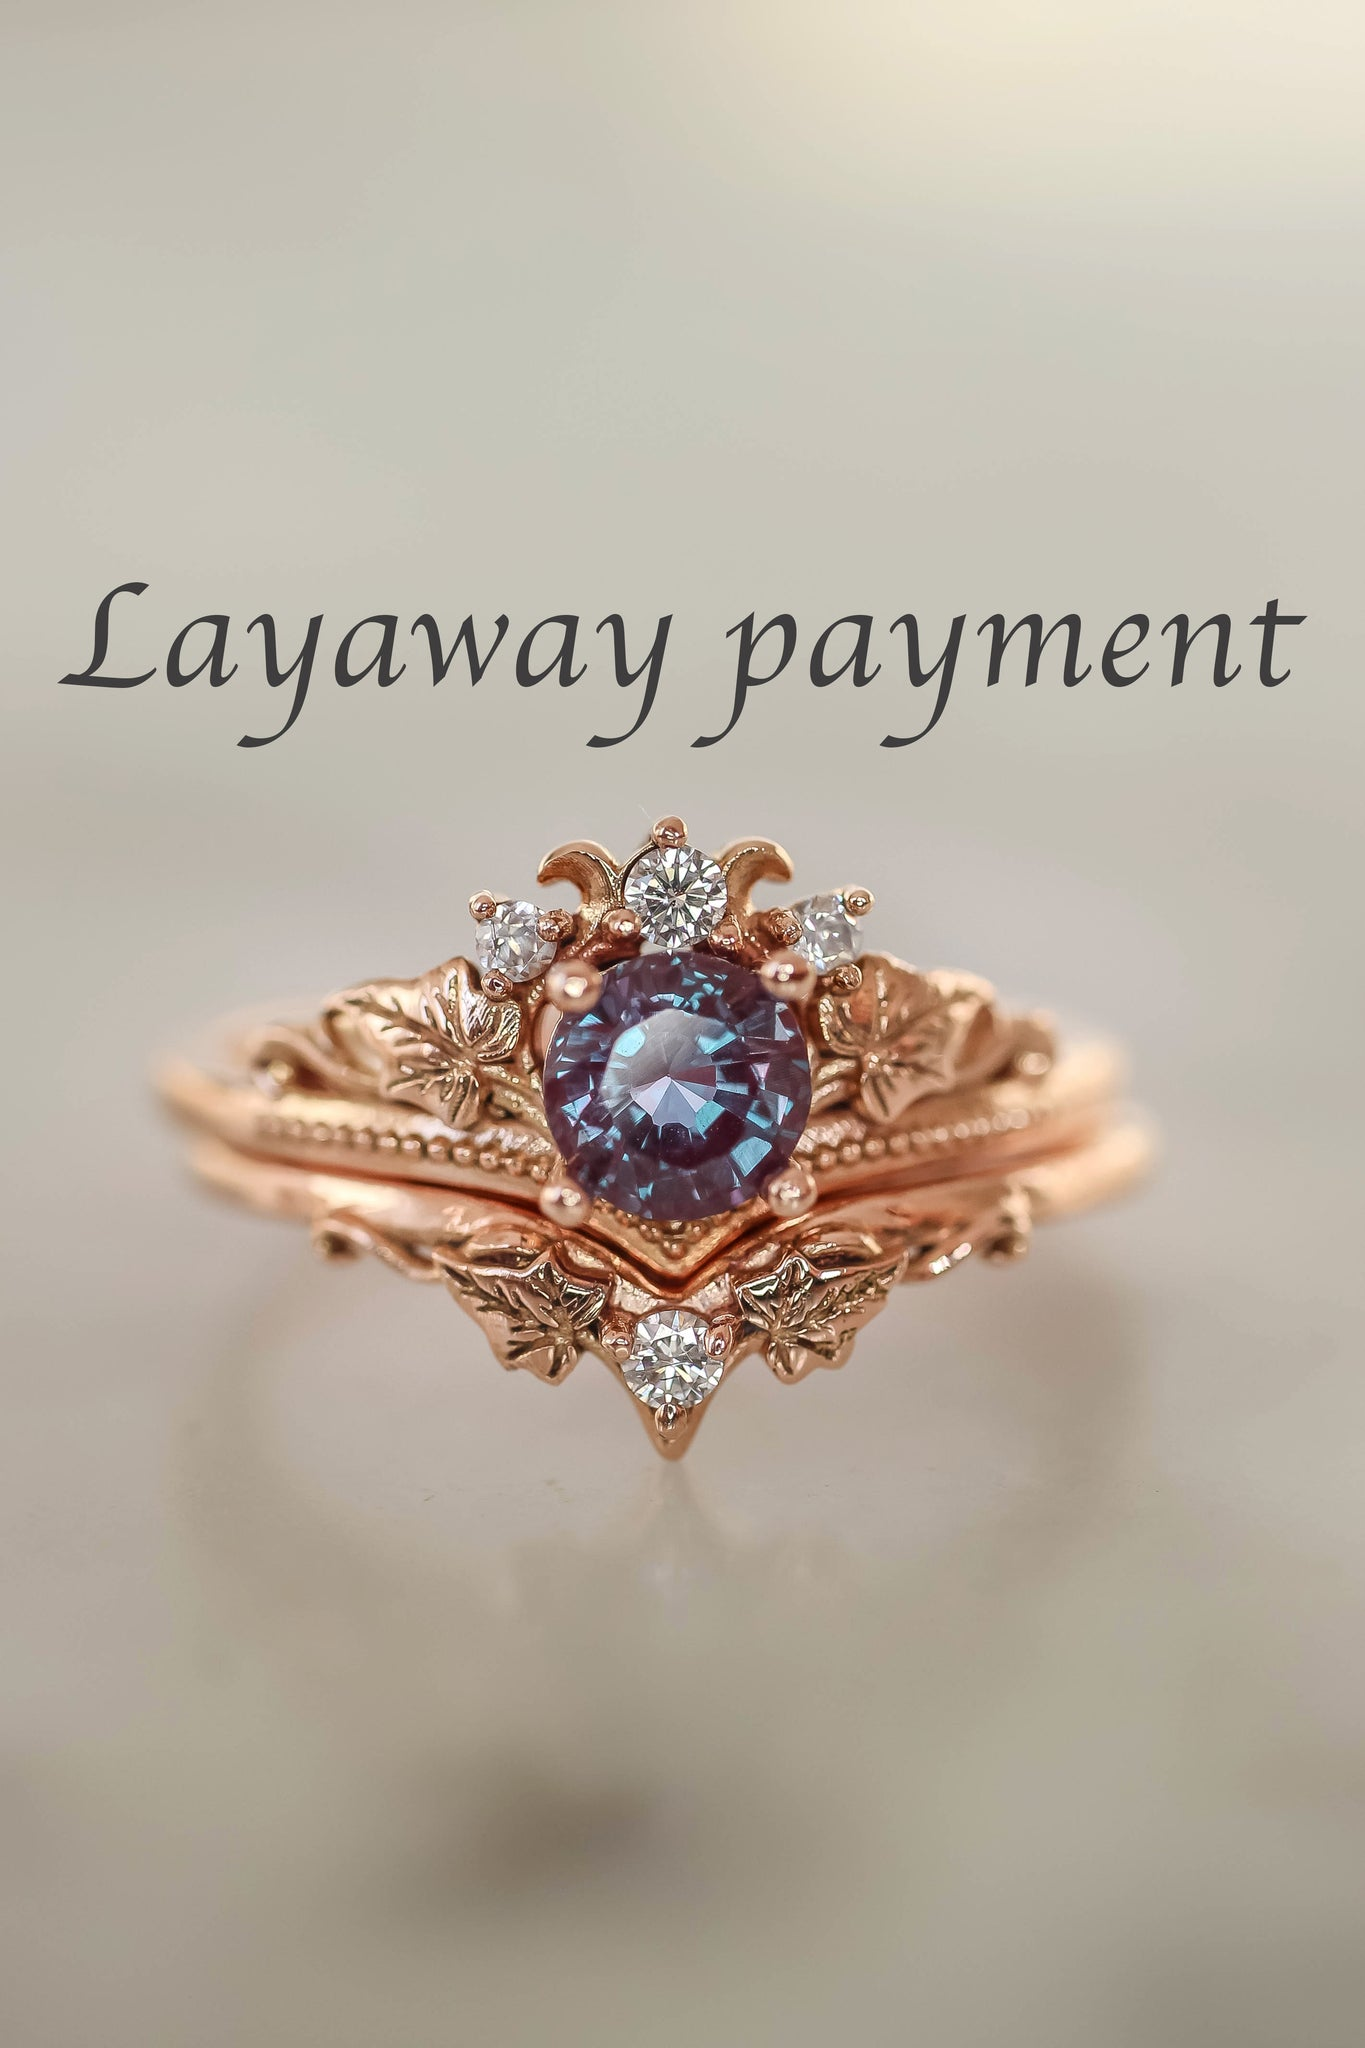 LAYAWAY 3 months: Bridal ring set with alexandrite and diamonds / Ariadne - Eden Garden Jewelry